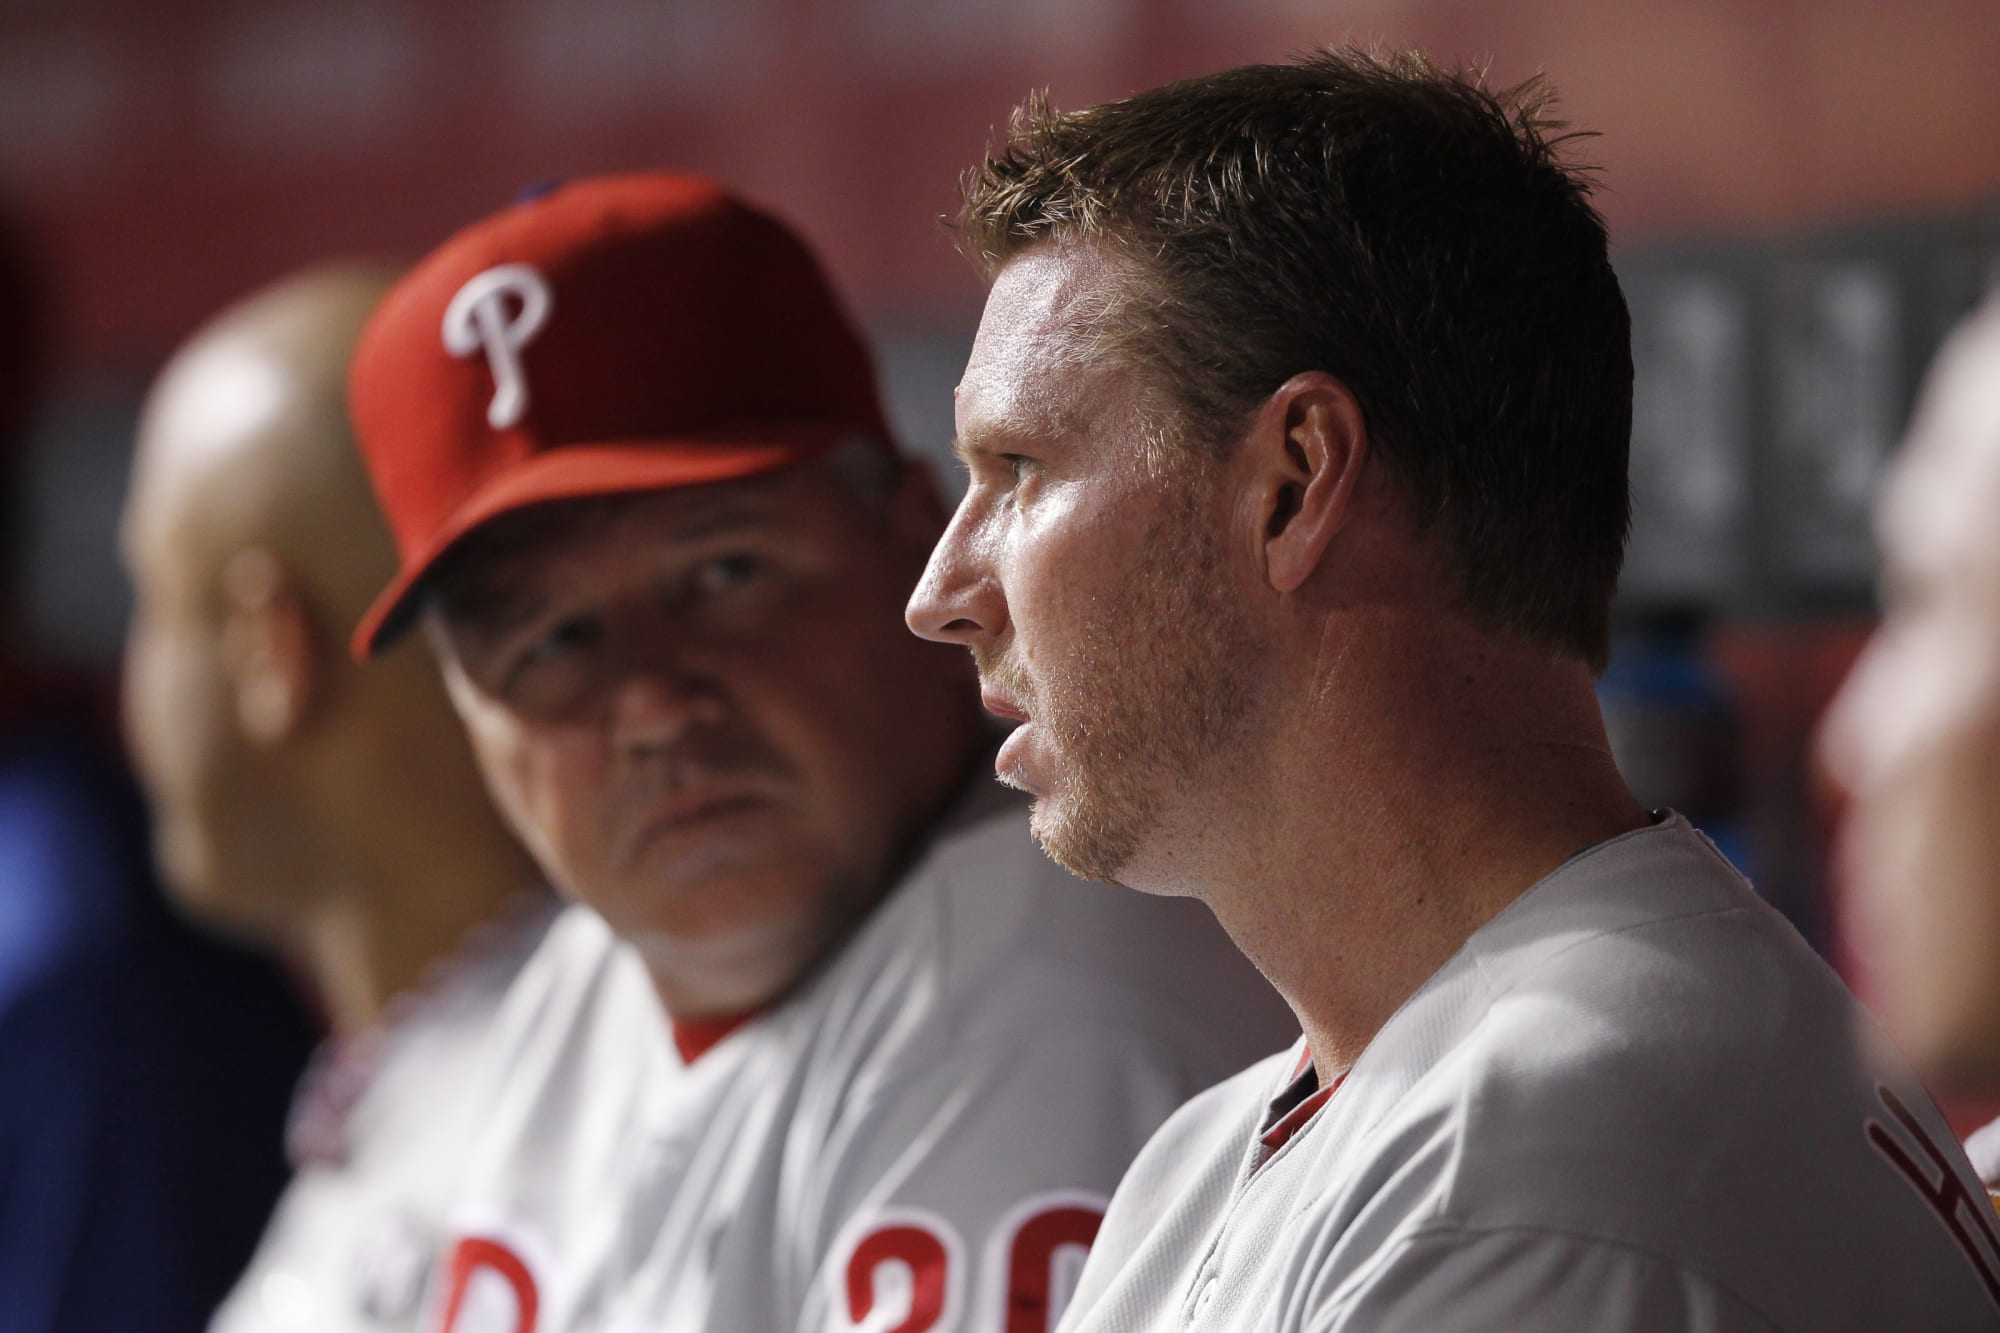 Phillies mulled bringing back Rich Dubee as pitching coach